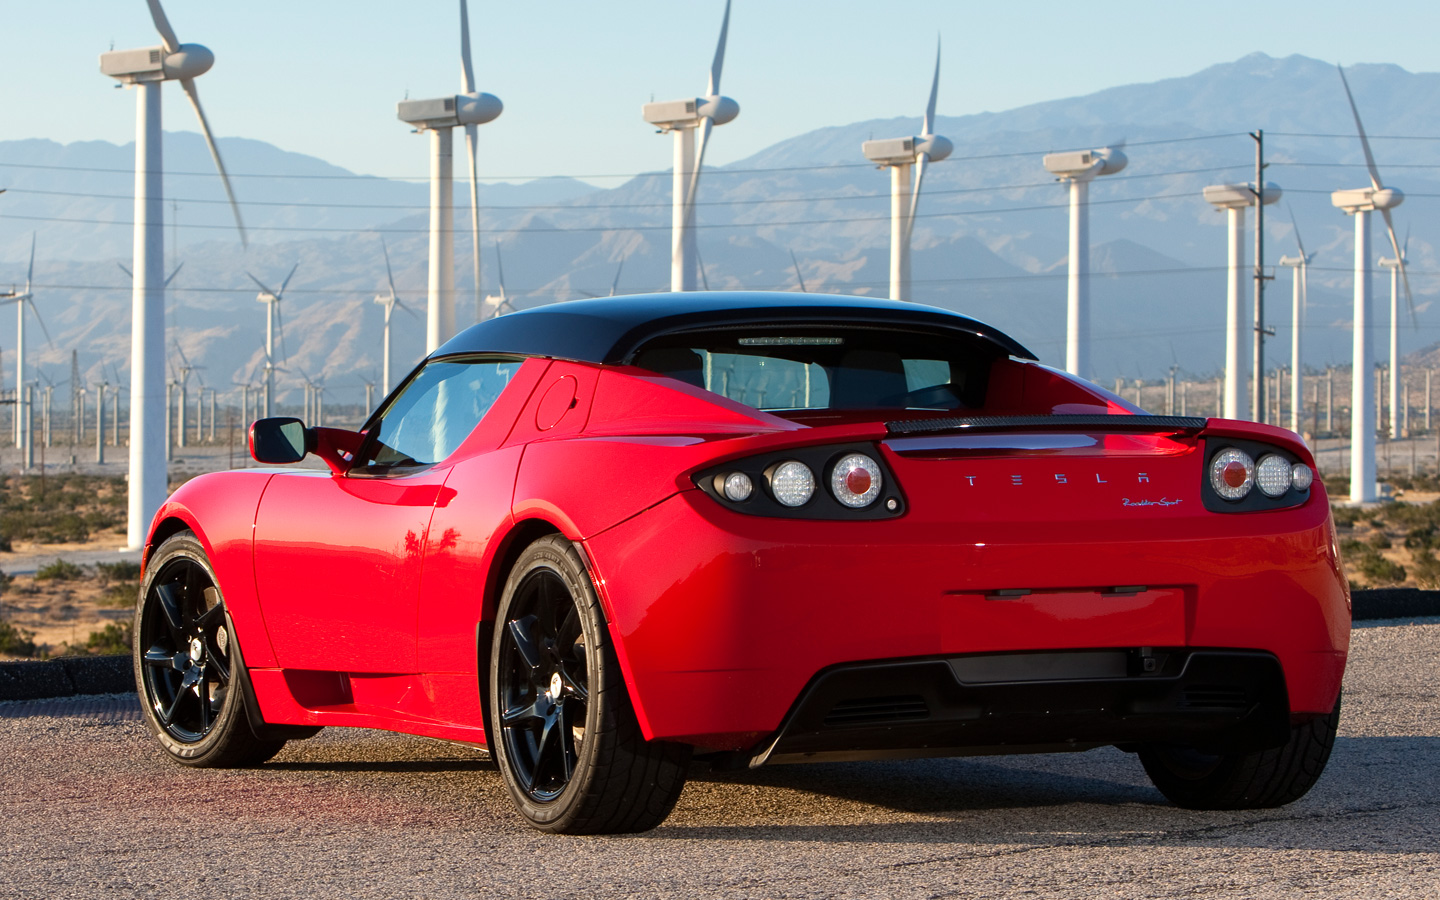 Super Cars: Tesla Roadster